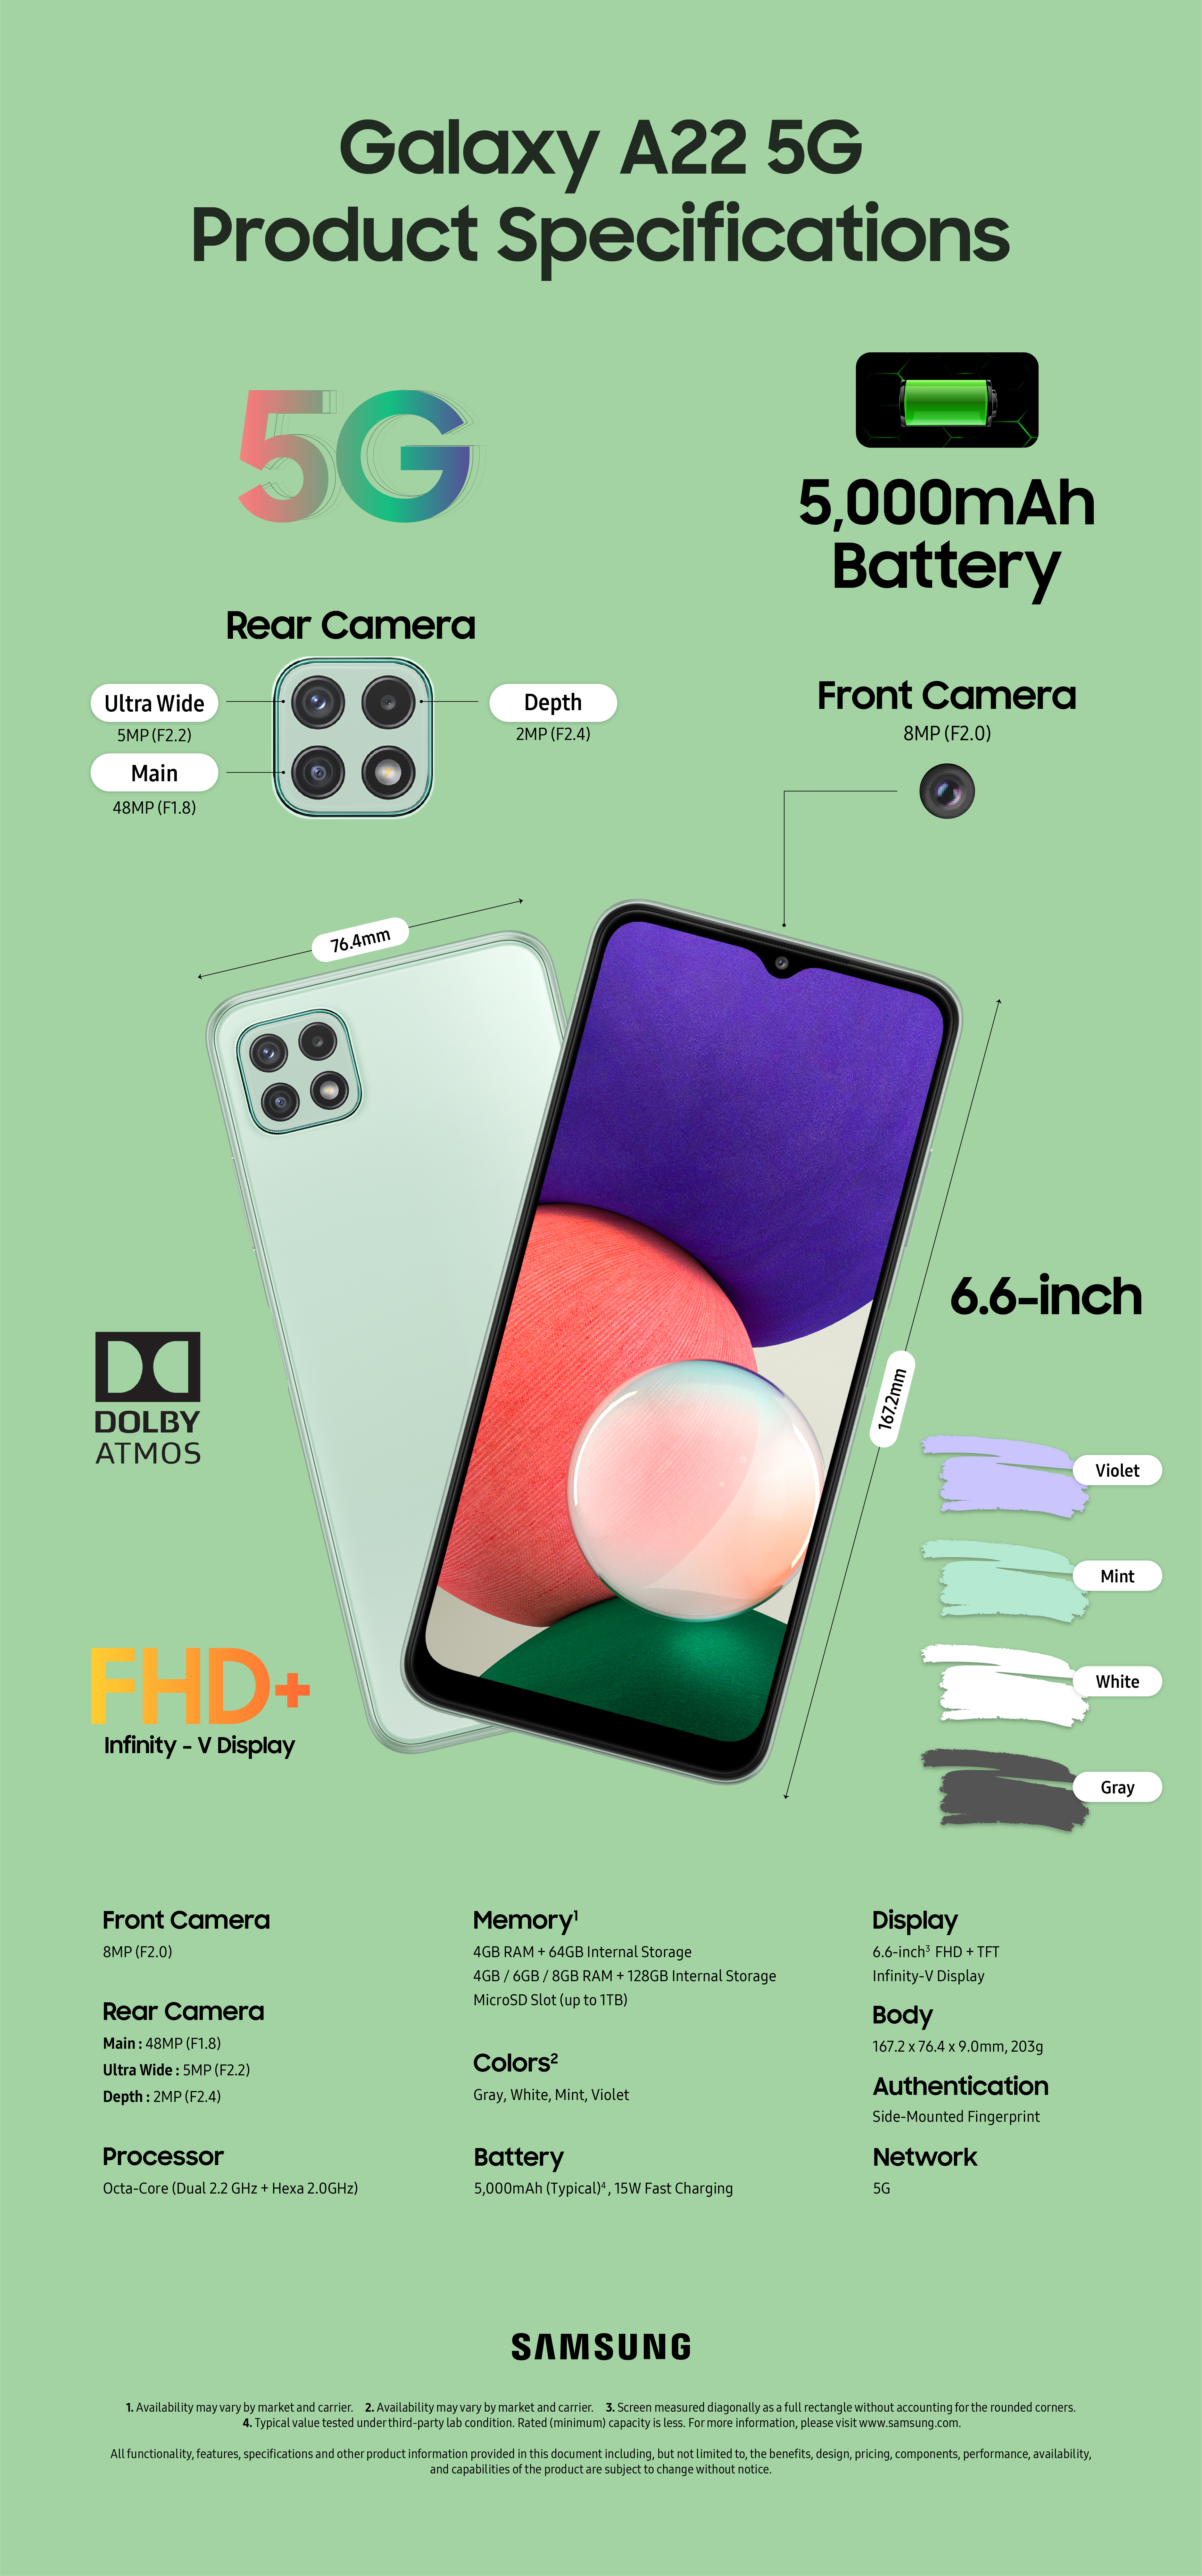 Samsung Galaxy A22 5G Specifications Infographic